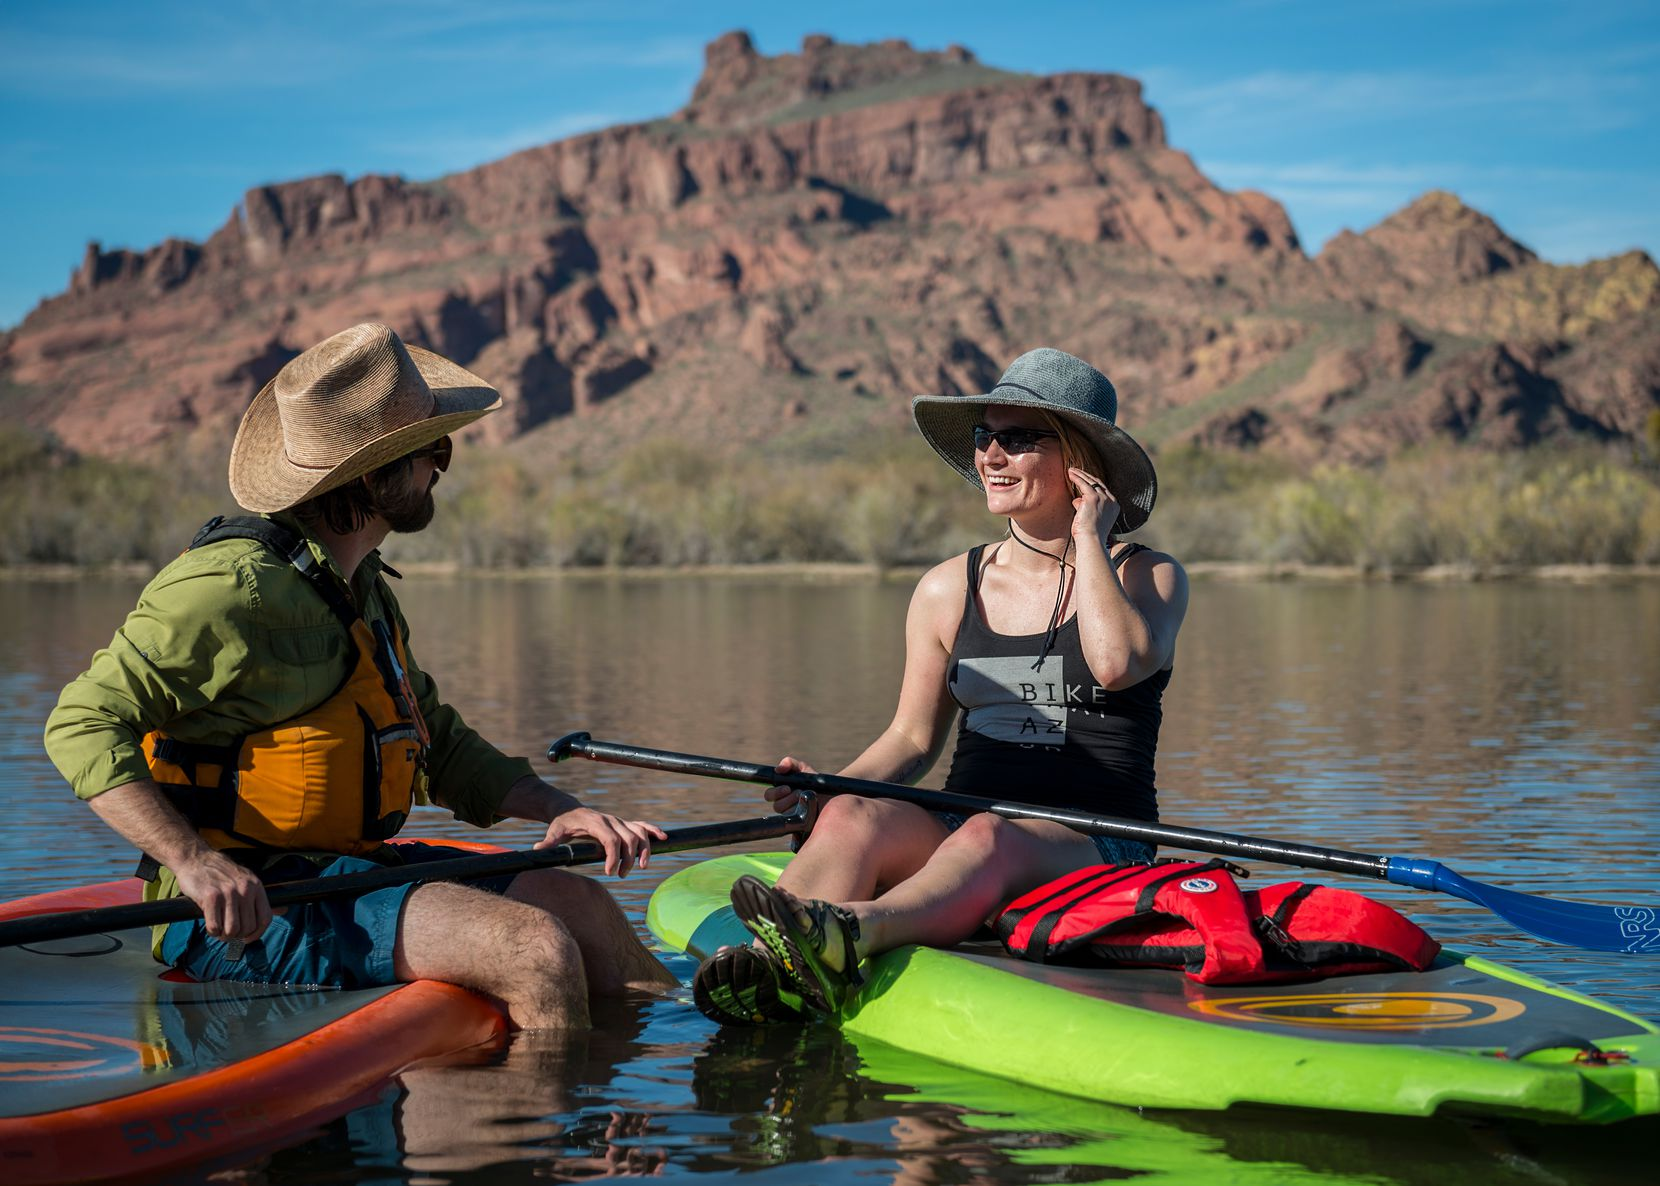 Paddleboarding on the Salt River is a popular activity for visitors to the Phoenix area.